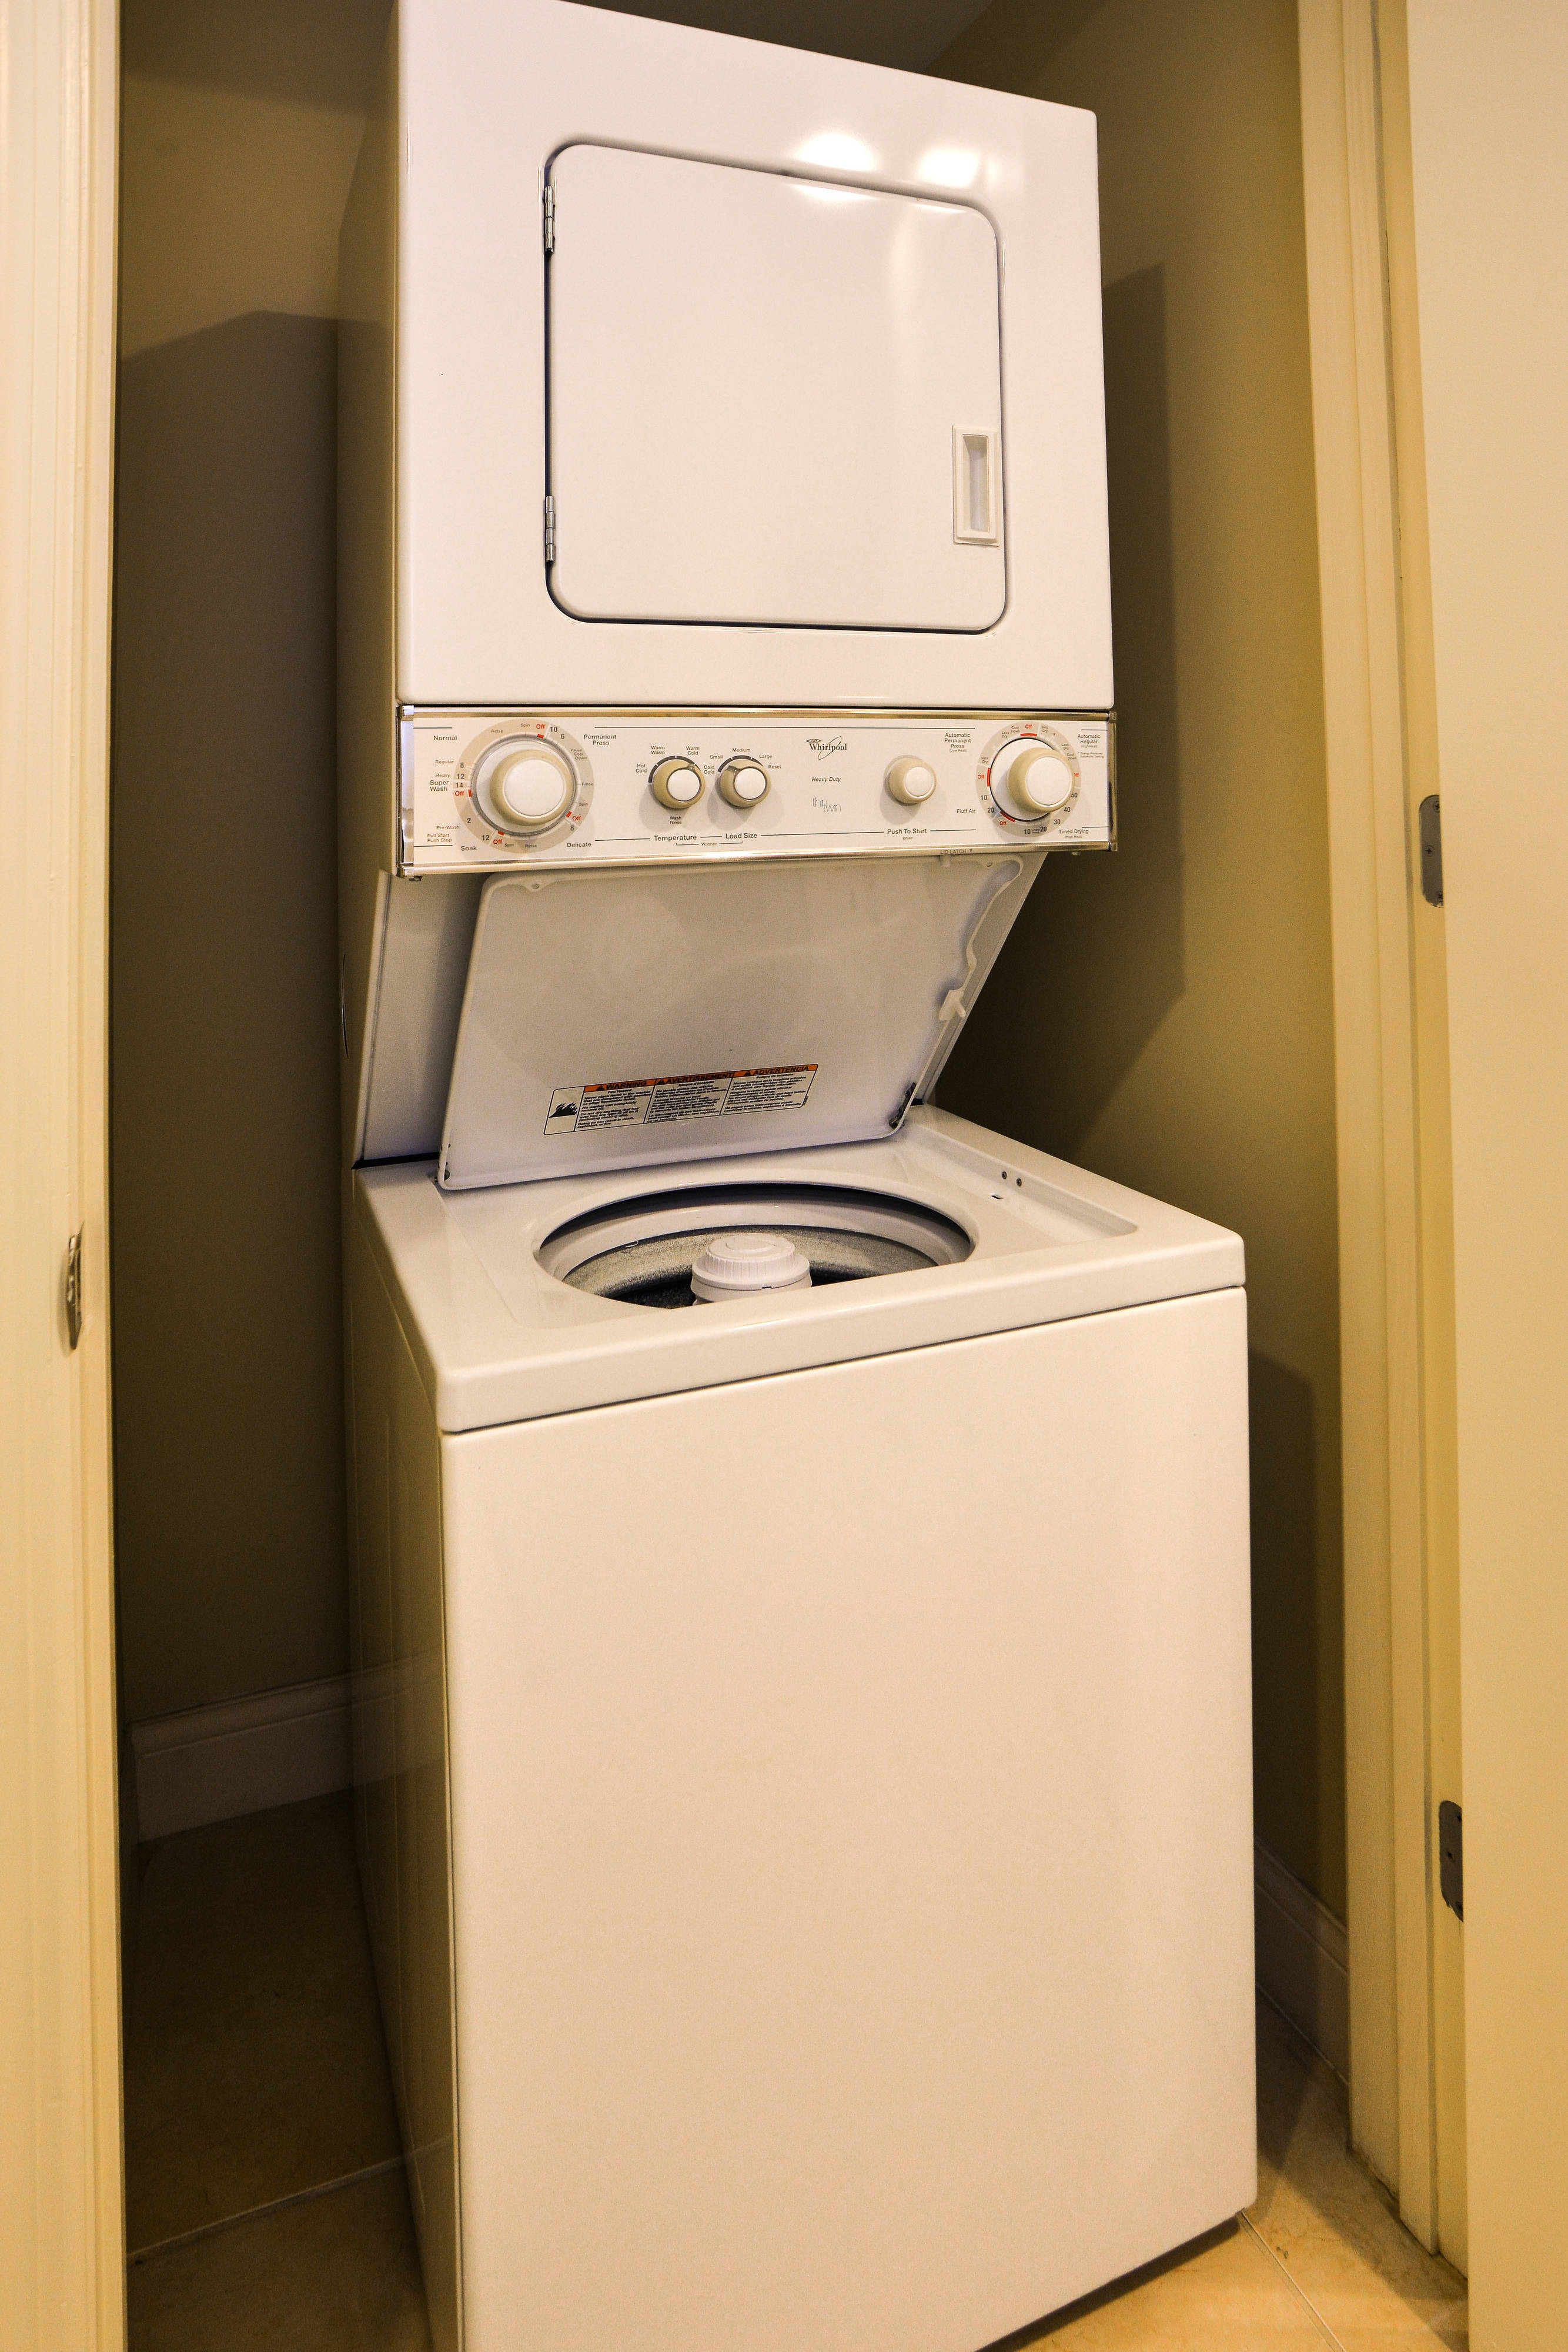 Residence Inn Fort Lauderdale Intracoastal washer and dryer